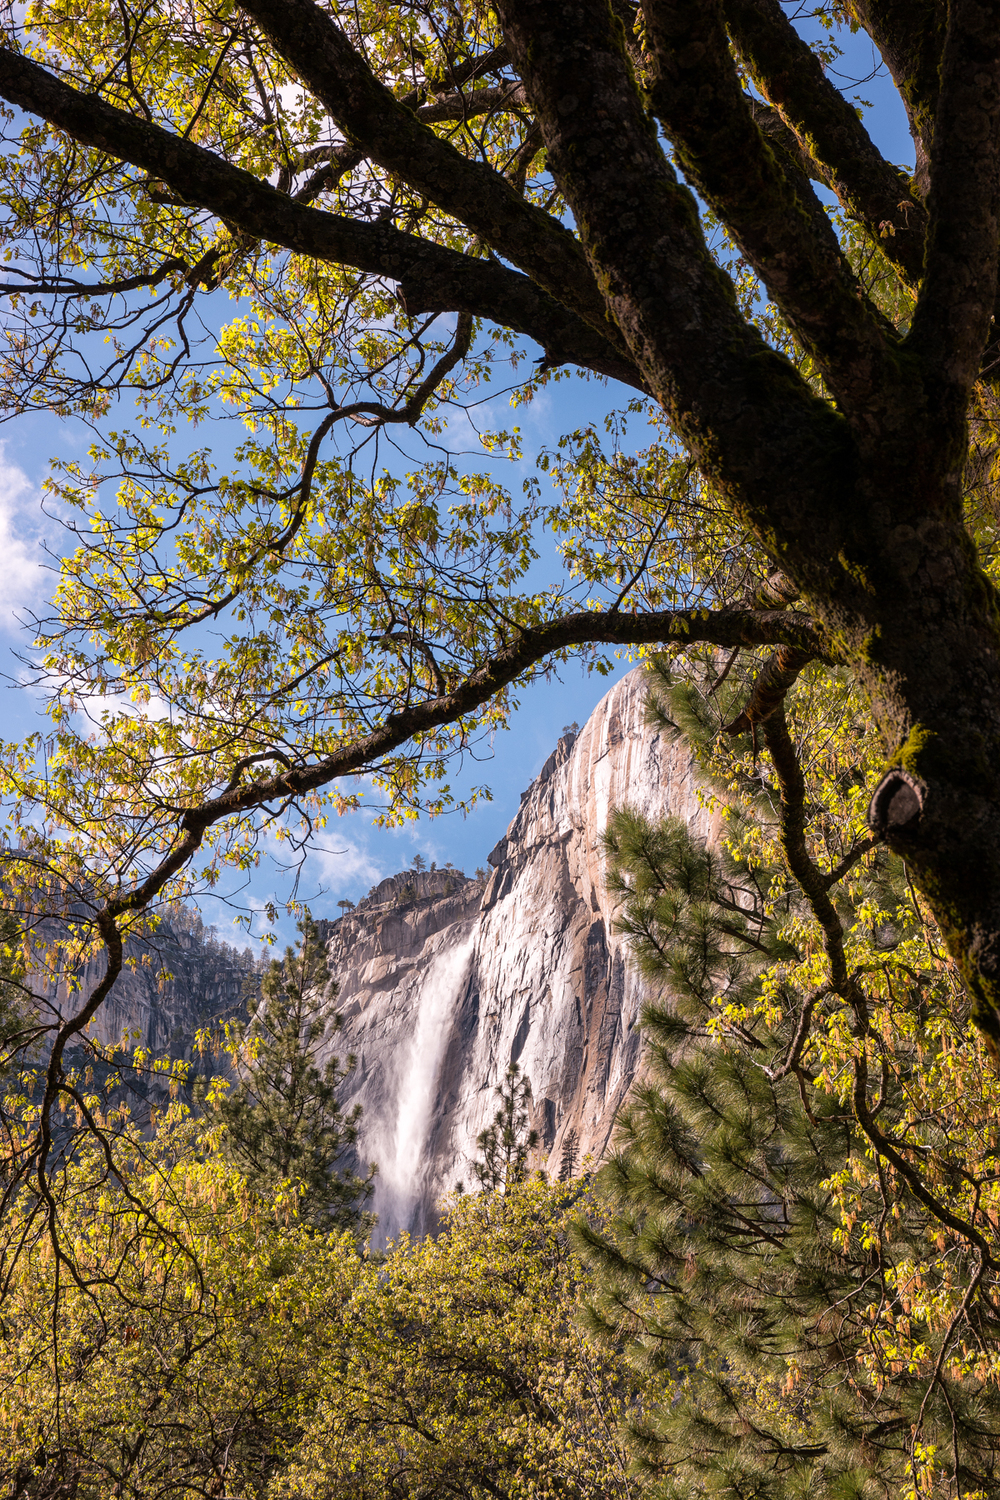 Wasim Muklashy Photography_April 2015_Yosemite_California_Samsung NX1_ SAM_7964_1800px.jpg